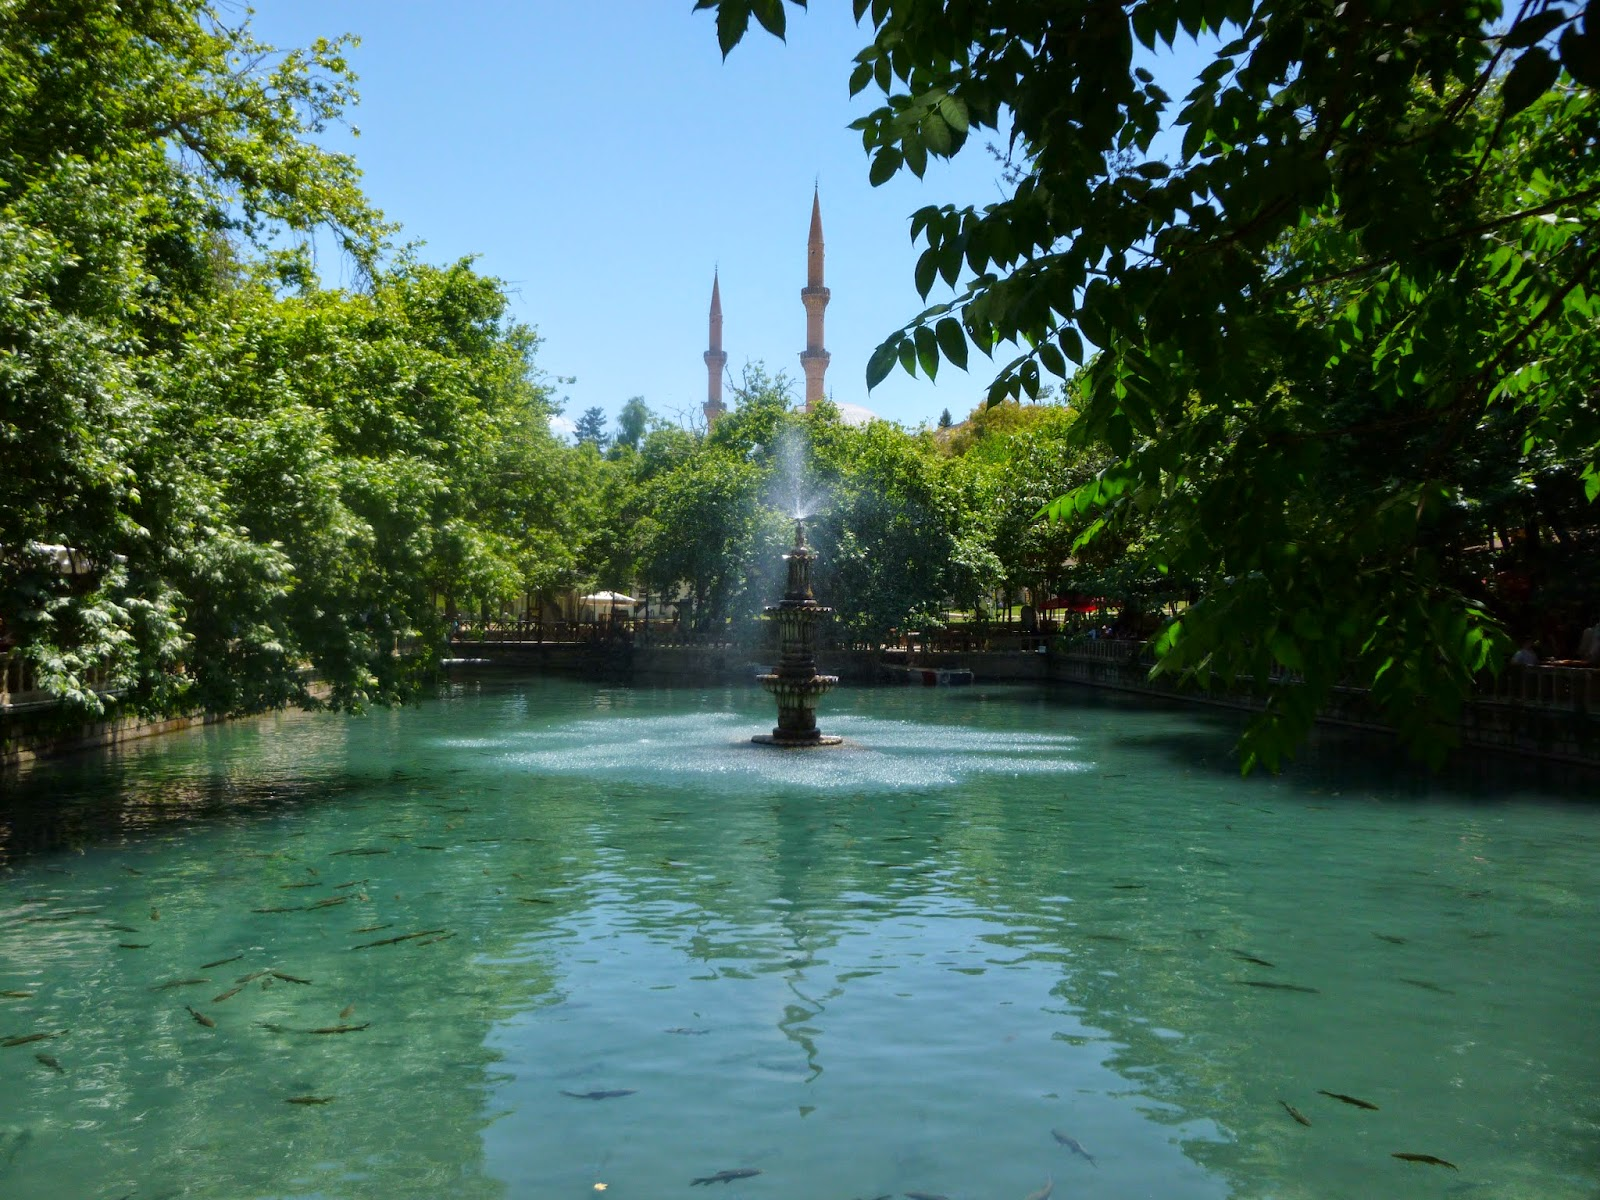 The fish pool in Sanliurfa, Turkey.